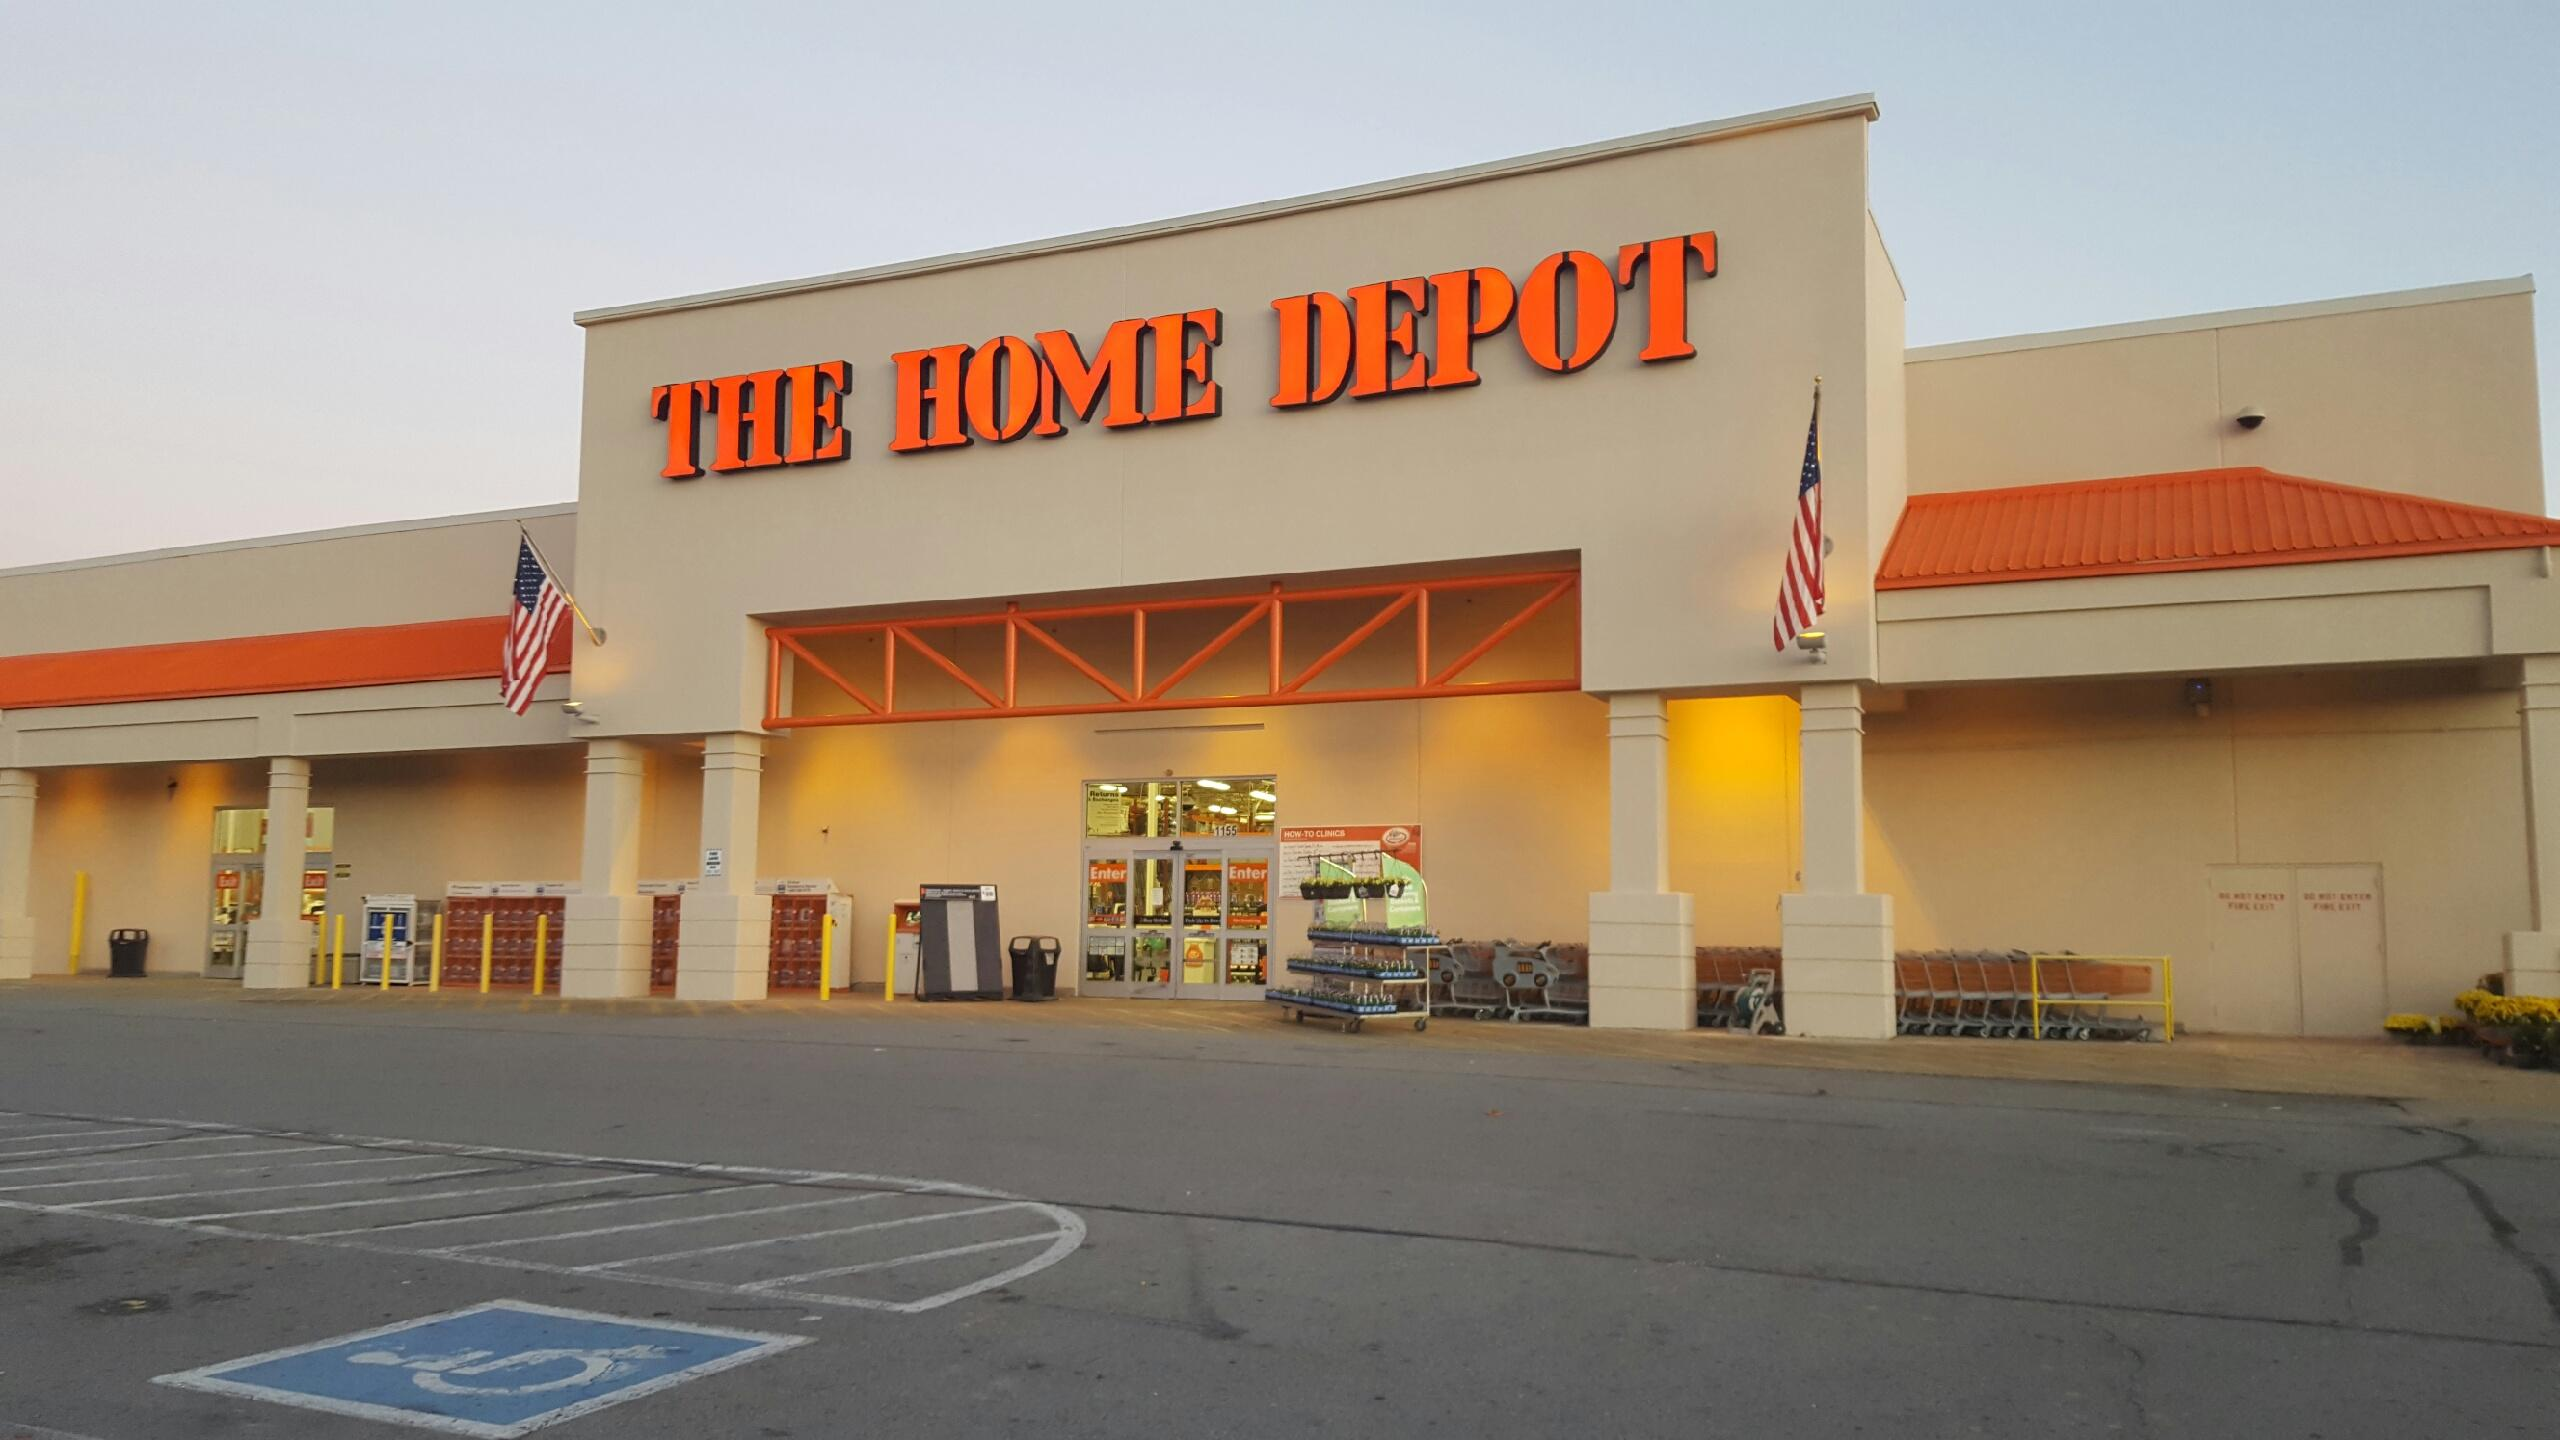 Home Depot Discount The Home Depot Coupons Antioch Tn Near Me 8coupons